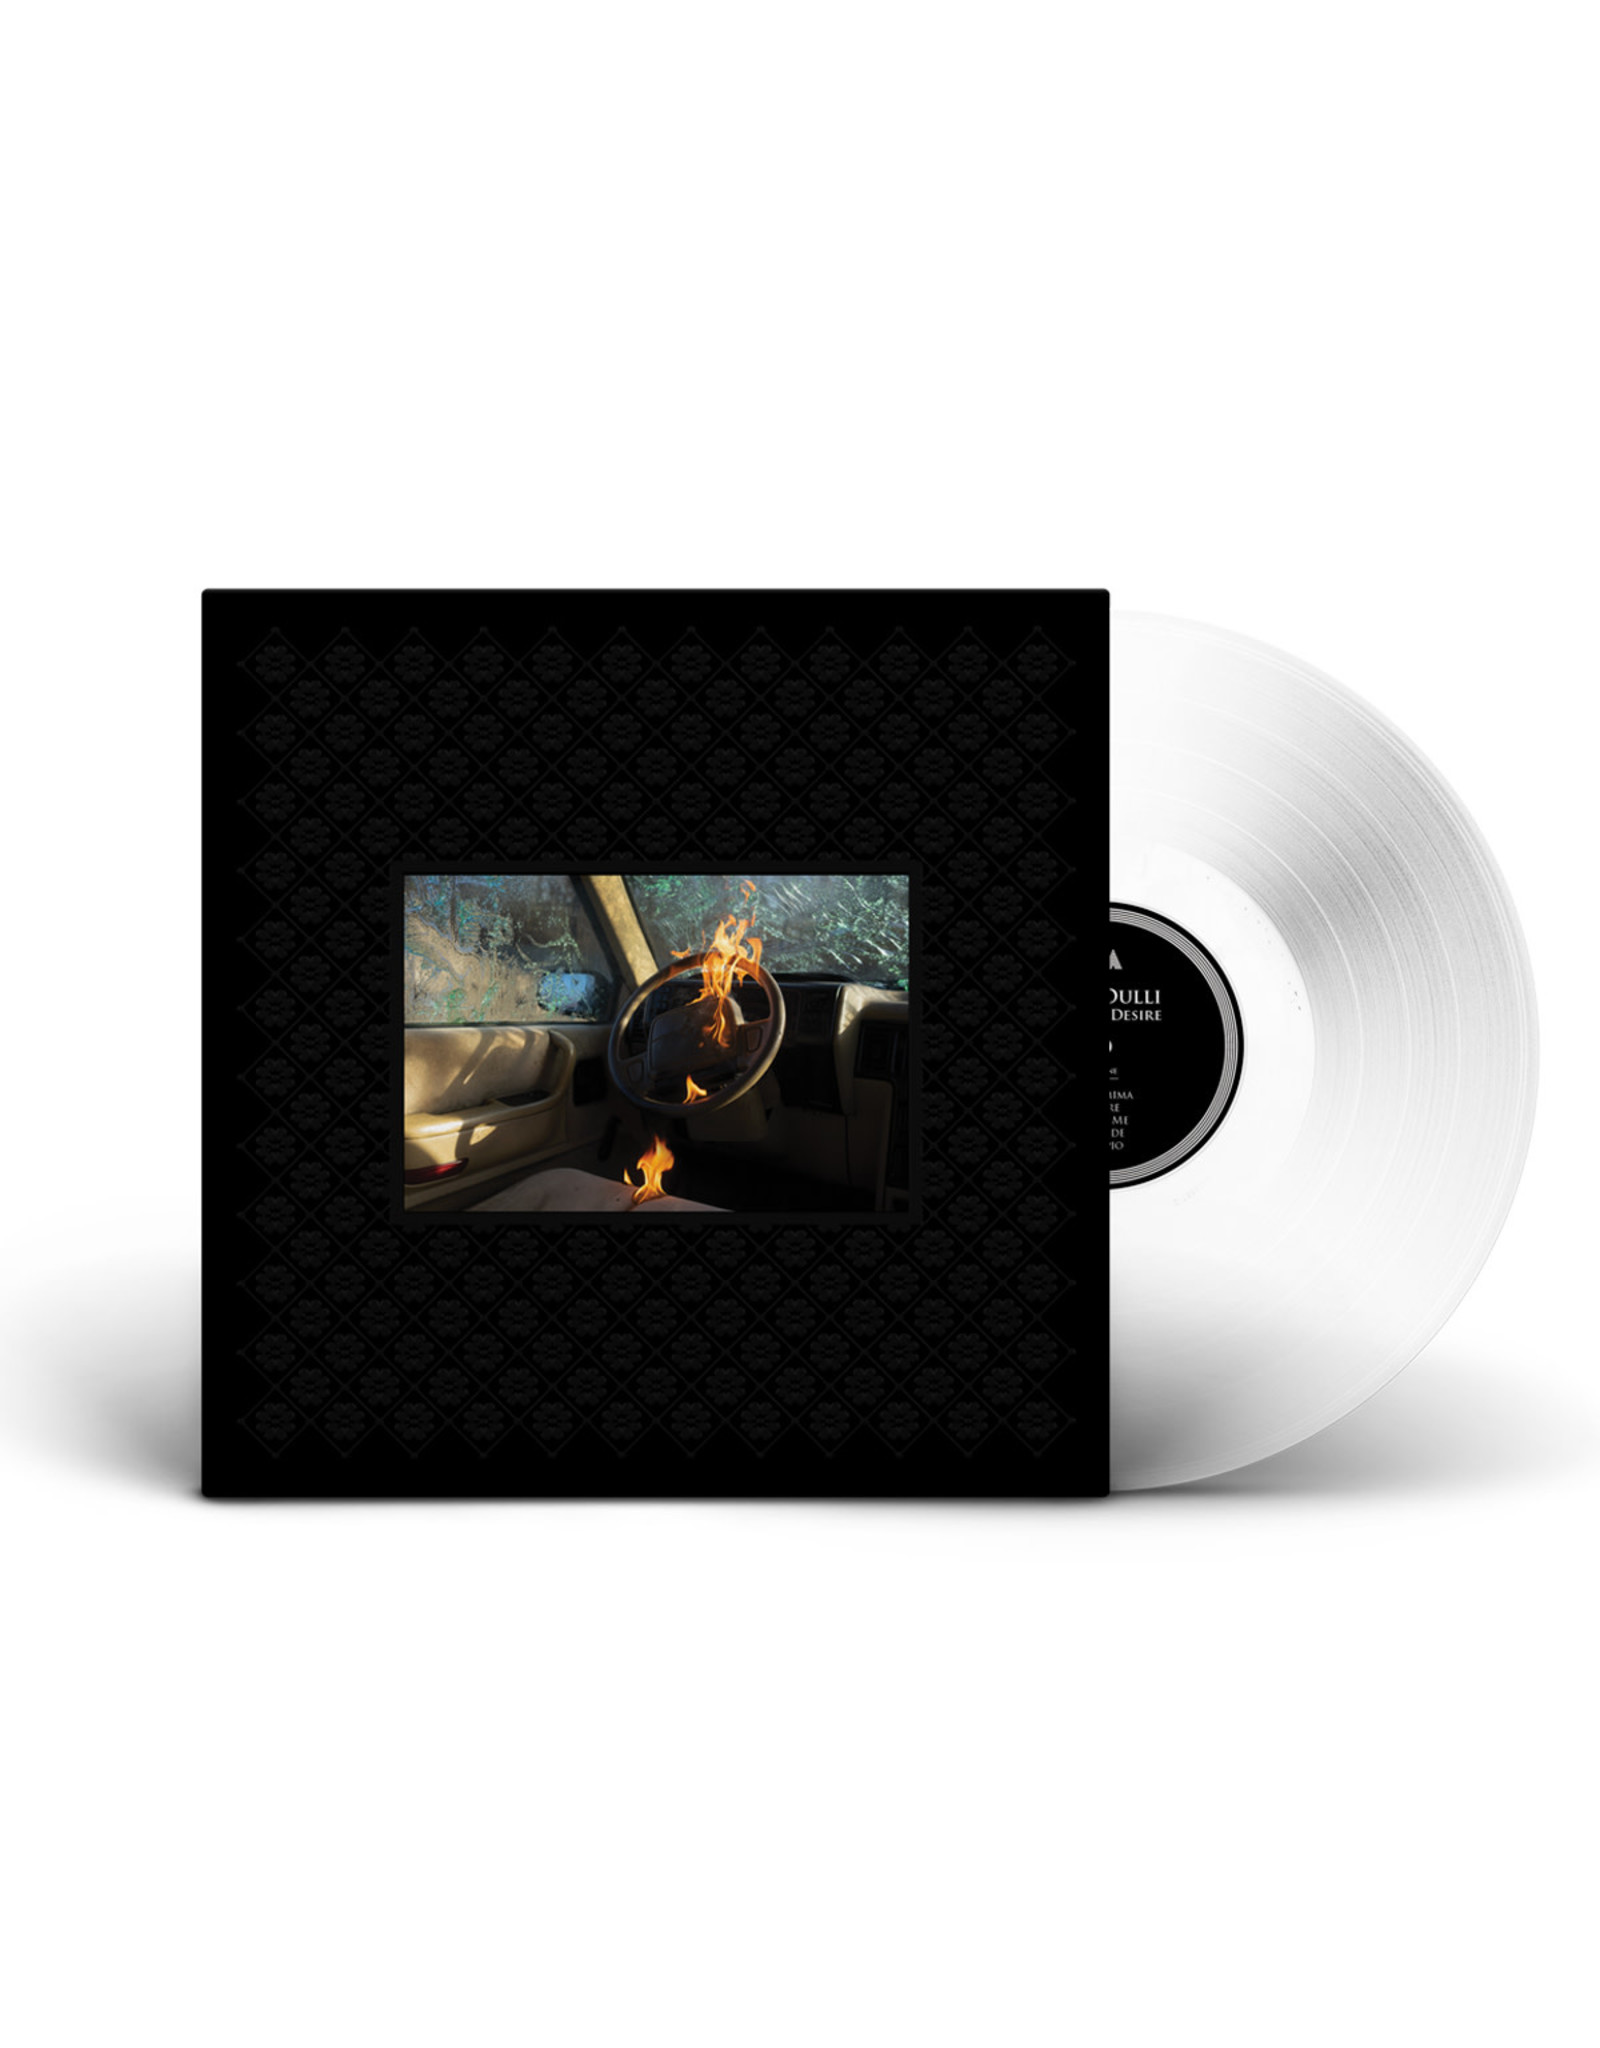 Greg Dulli - Random Desire (Exclusive Clear Vinyl)